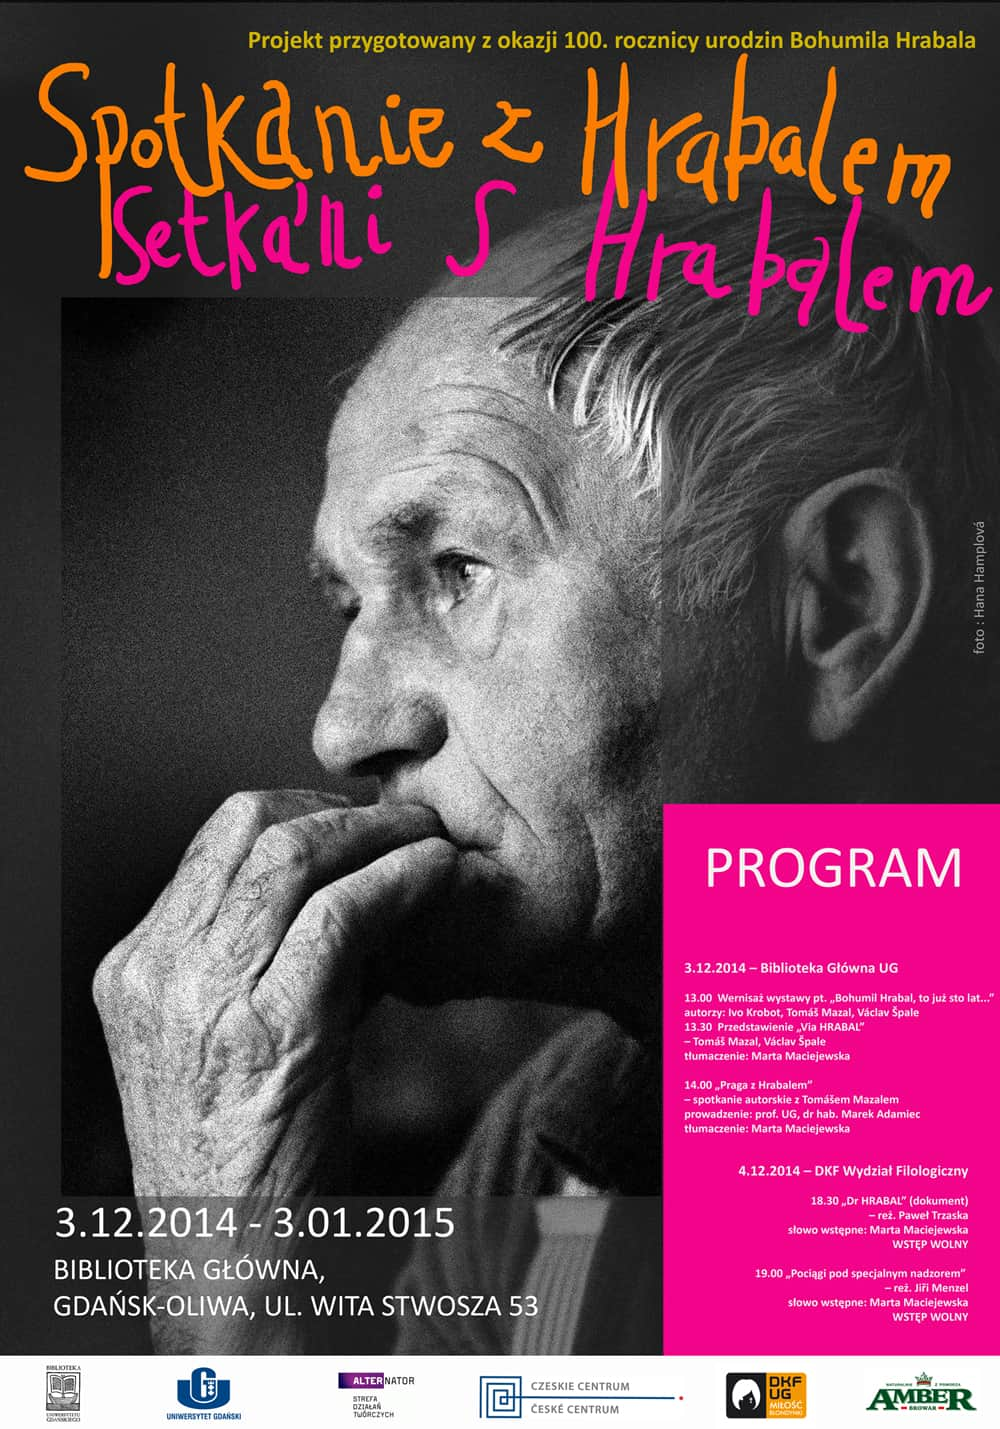 web_F_Plakat_Hrabal_100x70_program_final_